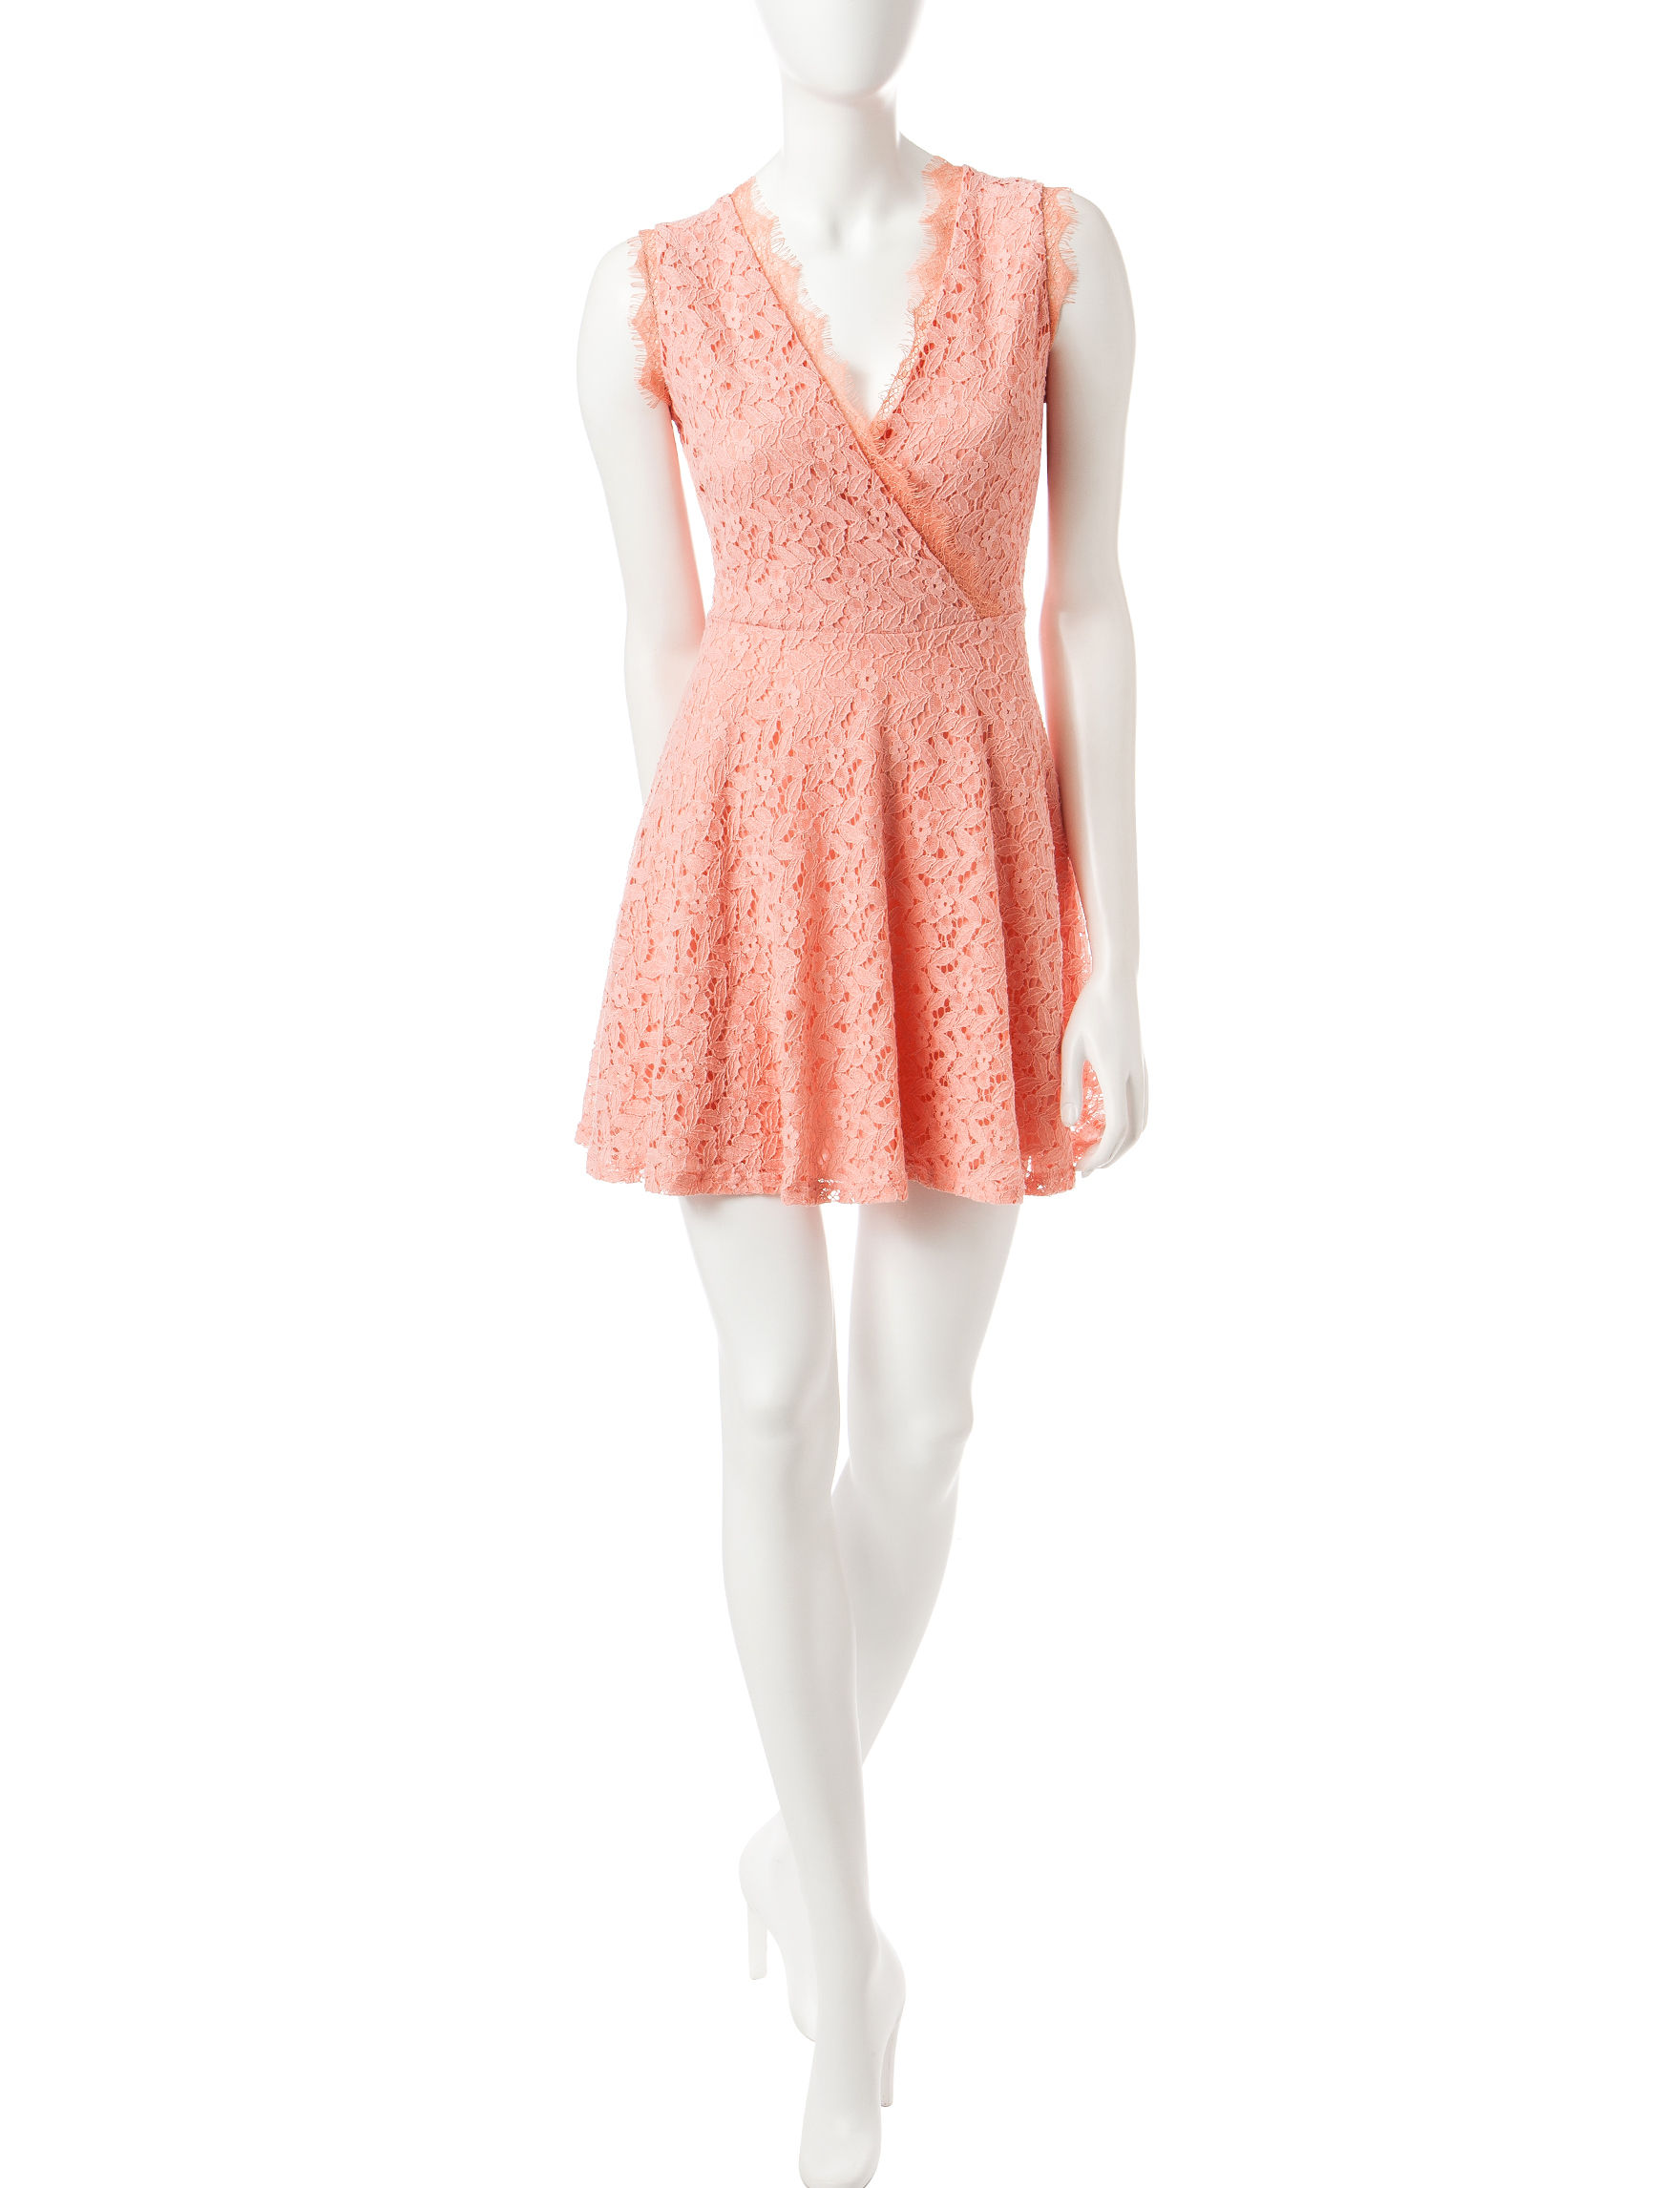 Romeo + Juliet Couture Peach Cocktail & Party Sundresses